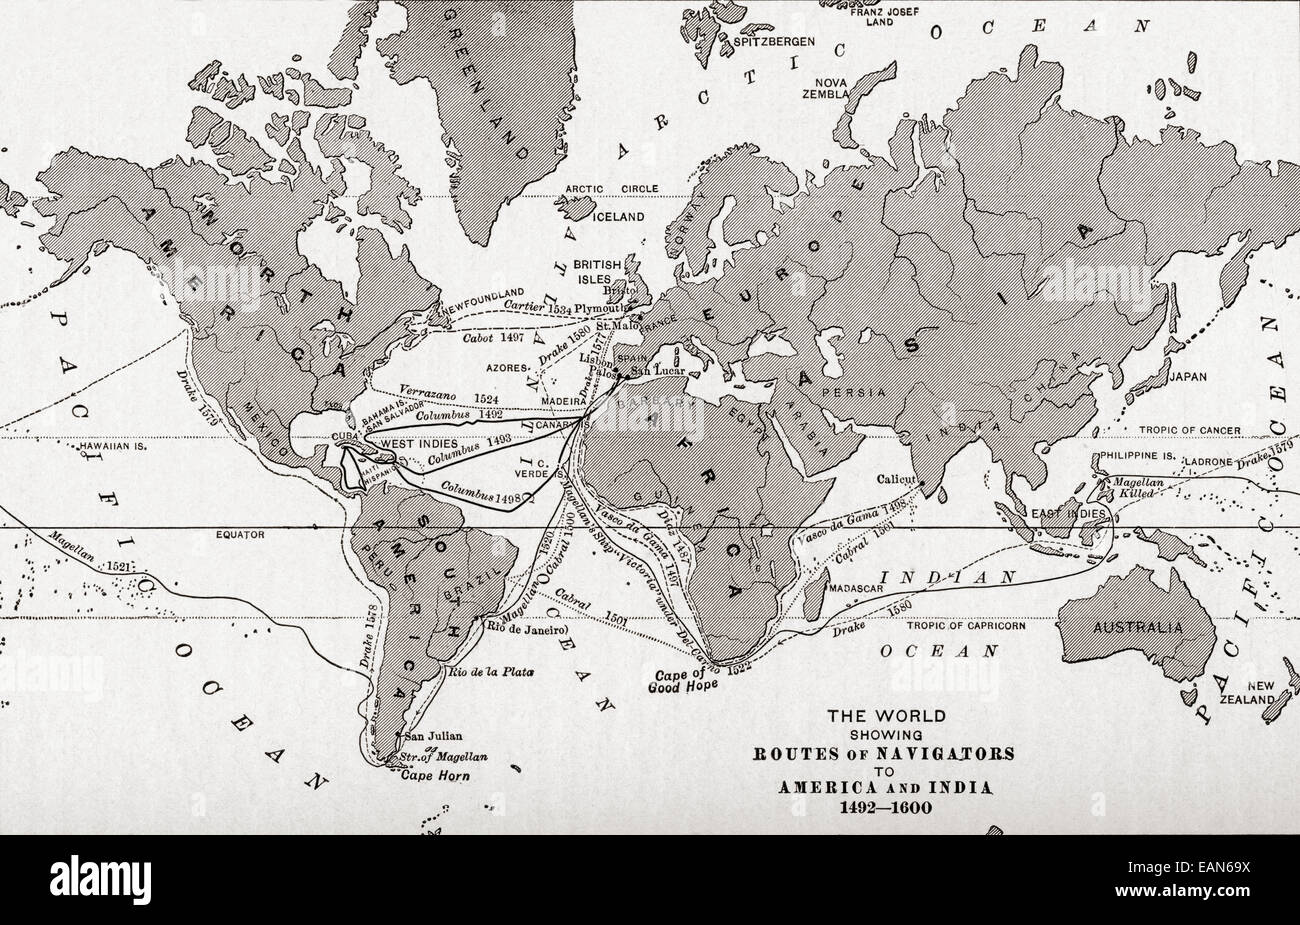 Map Of The World Showing The Routes Of Navigators To America And